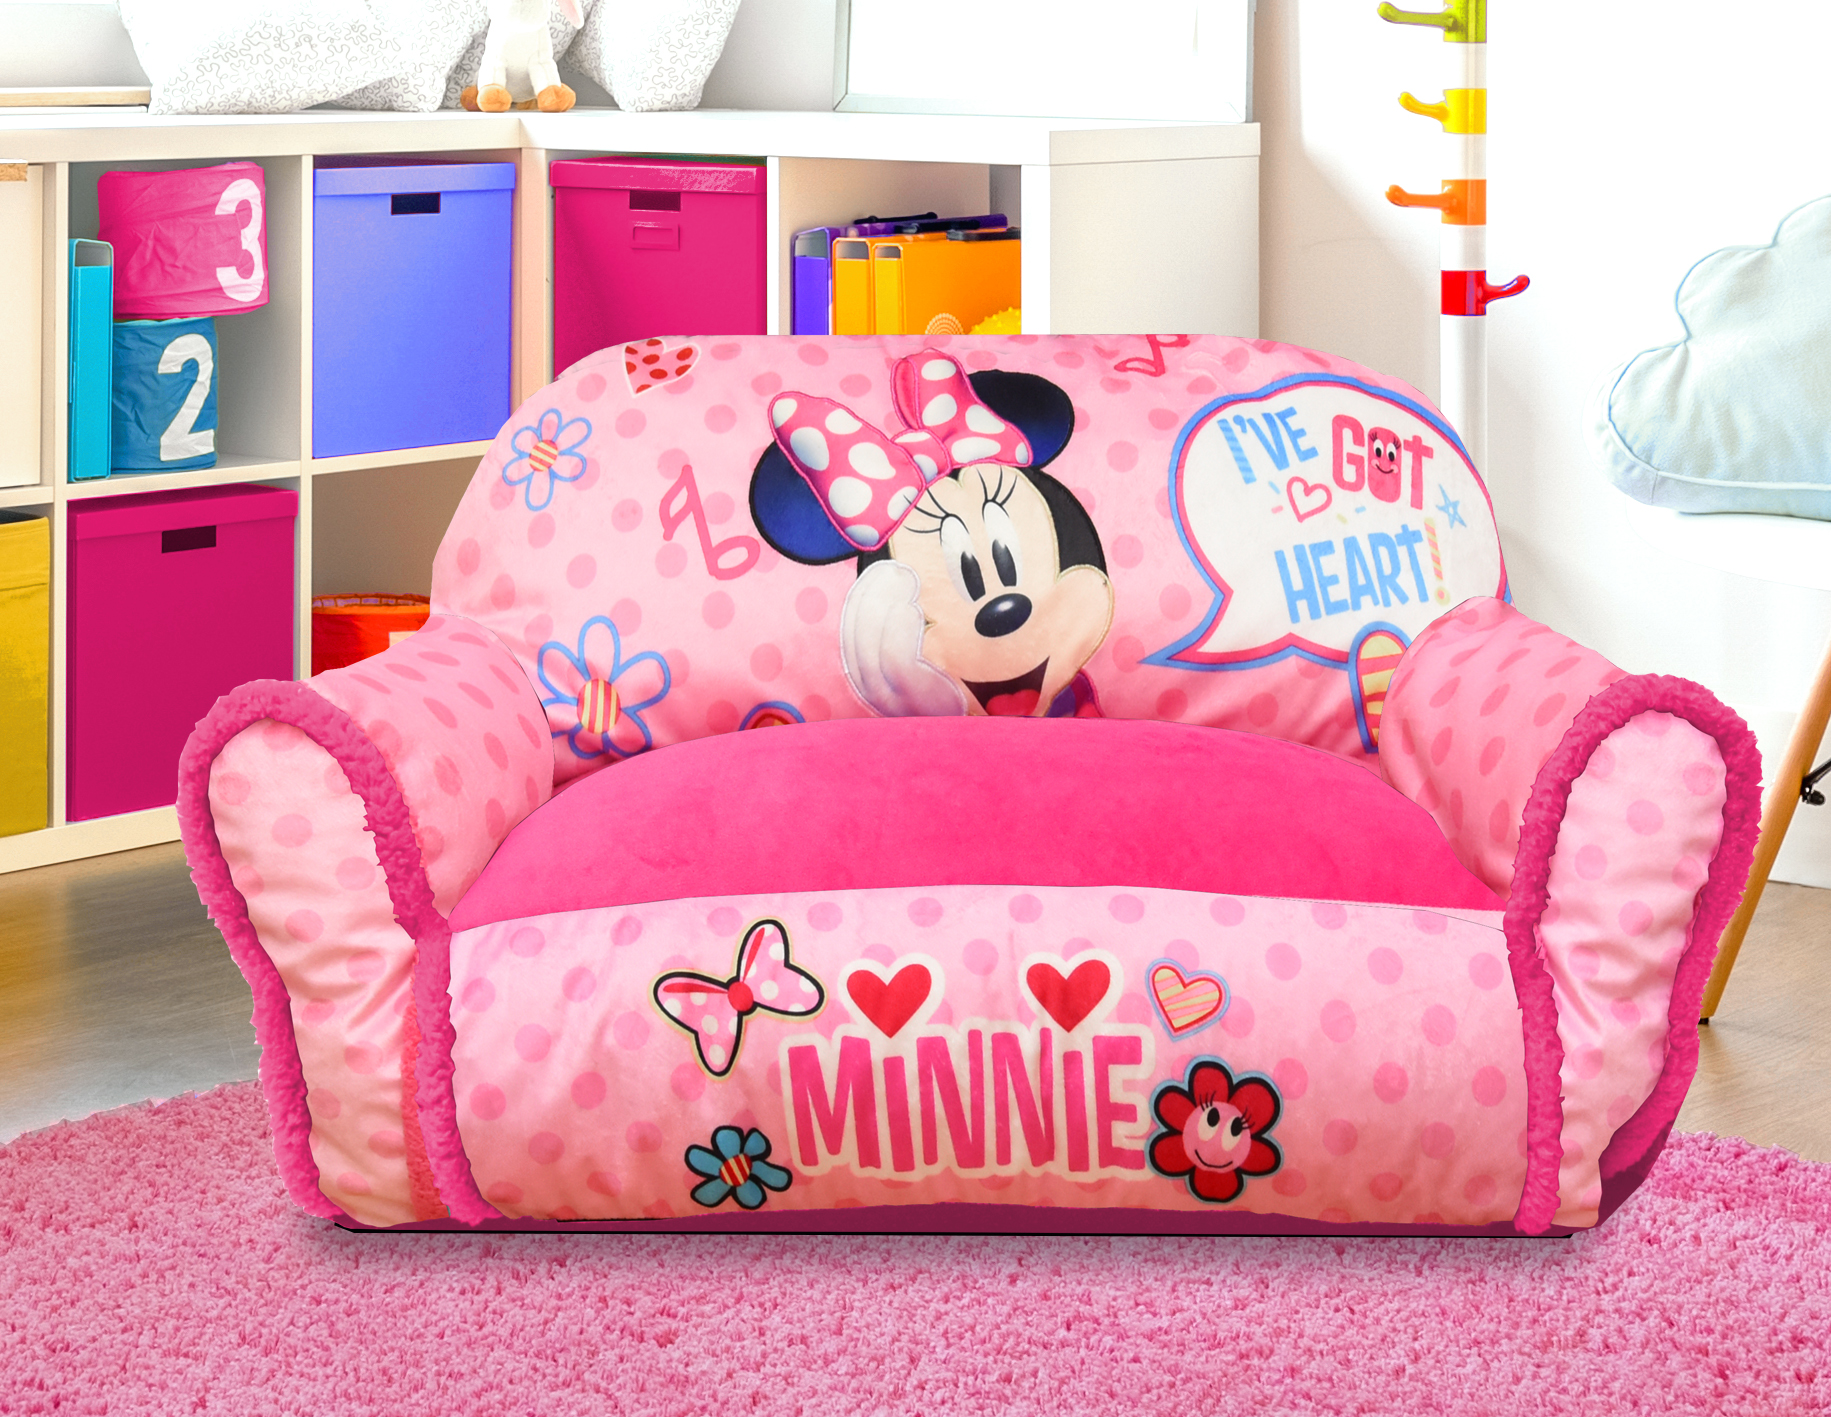 Minnie Mouse chair.jpg